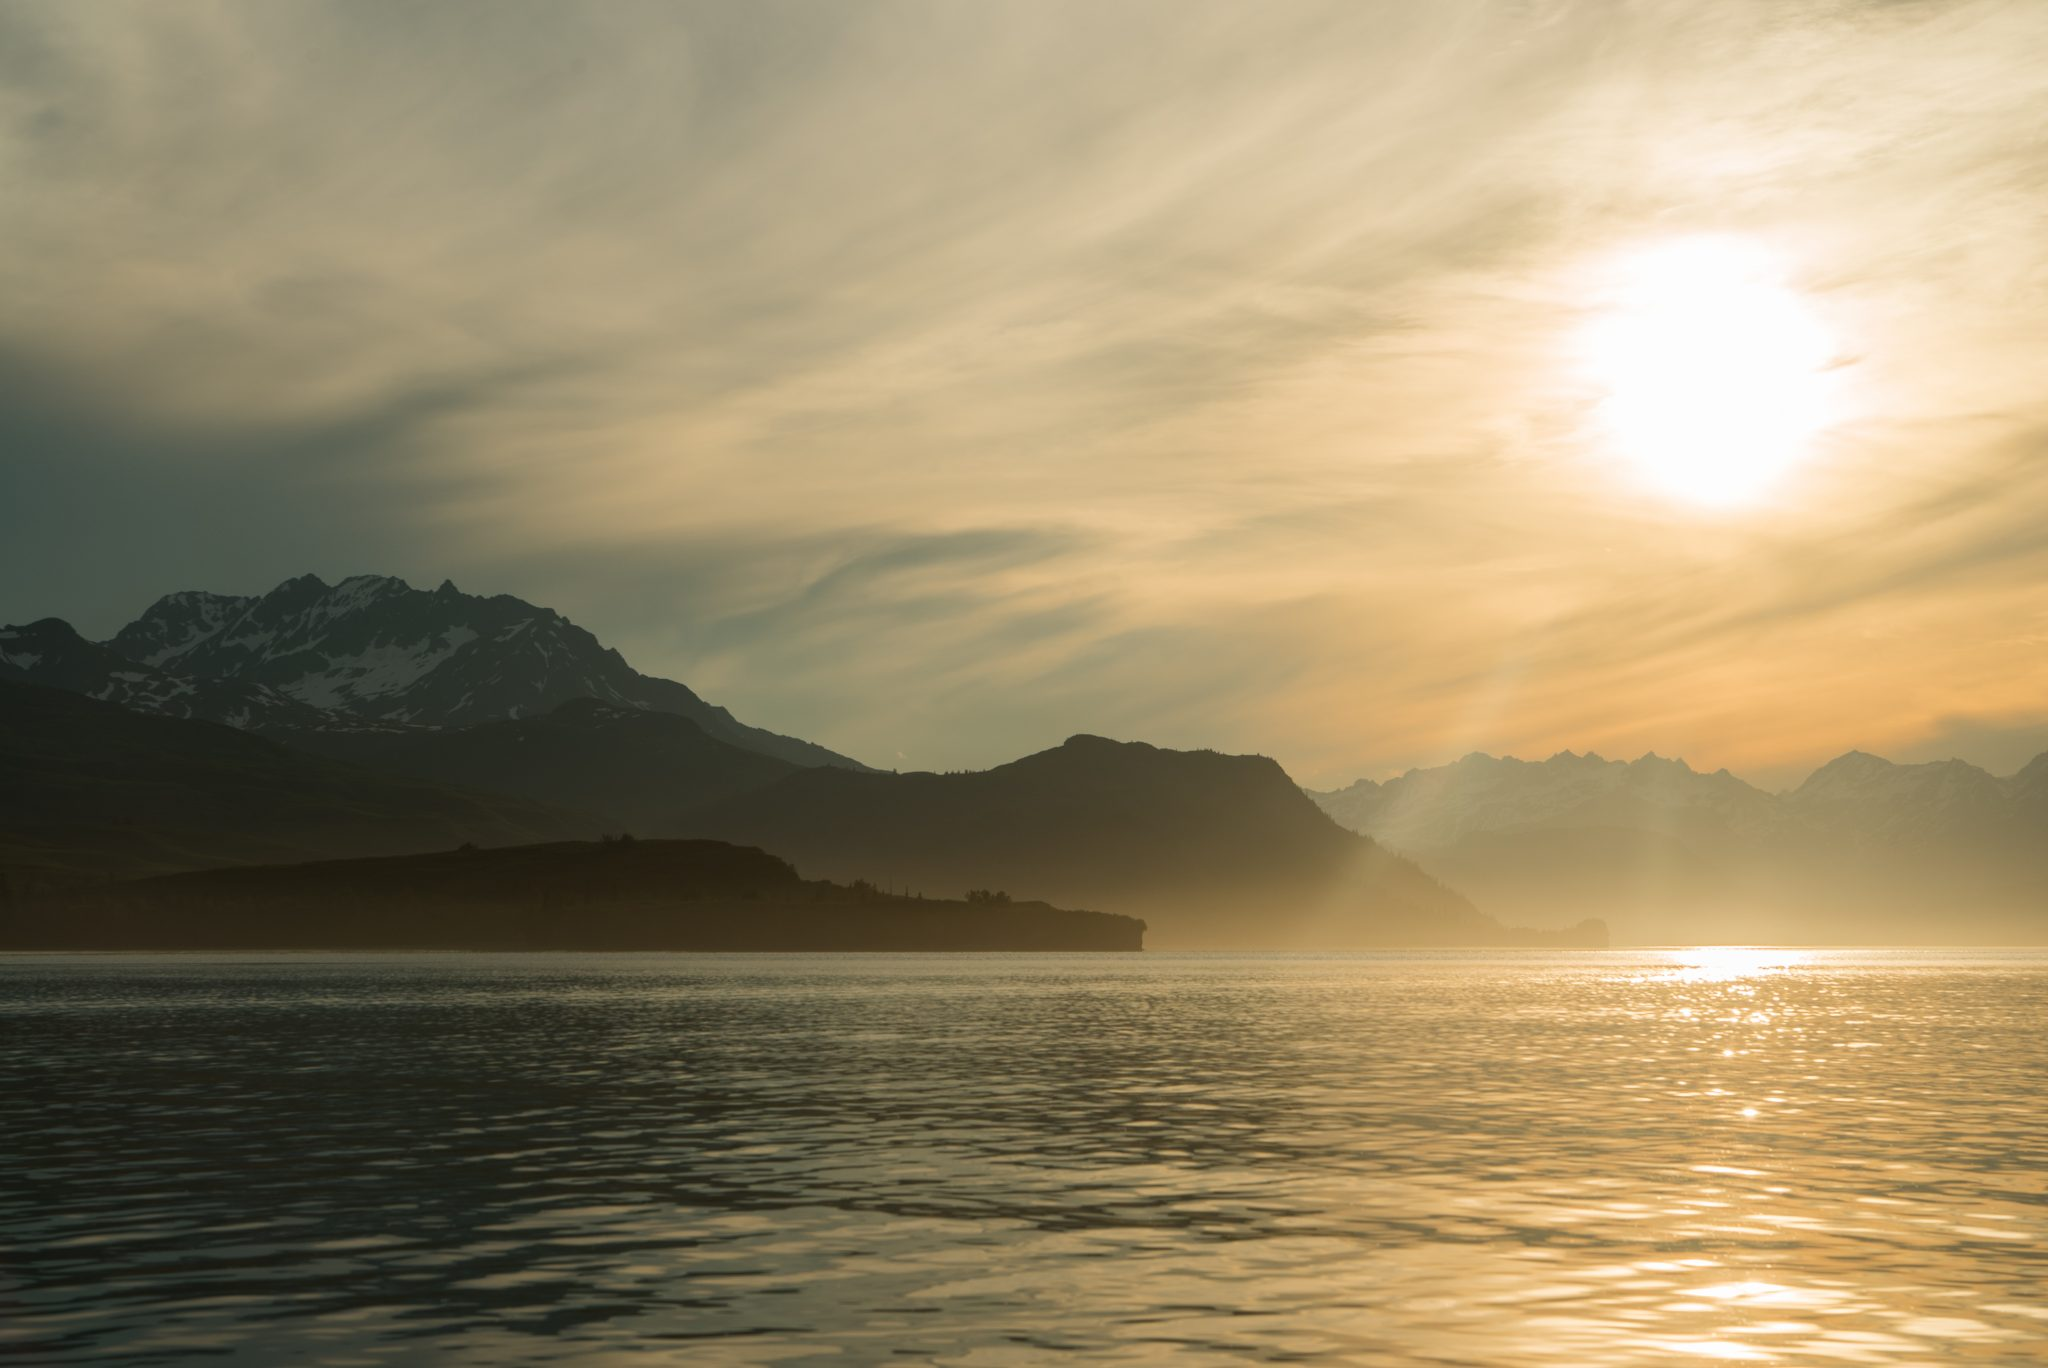 alaska-tuxedni-bay-sunset-mountains-snug-harbor-DSC06889